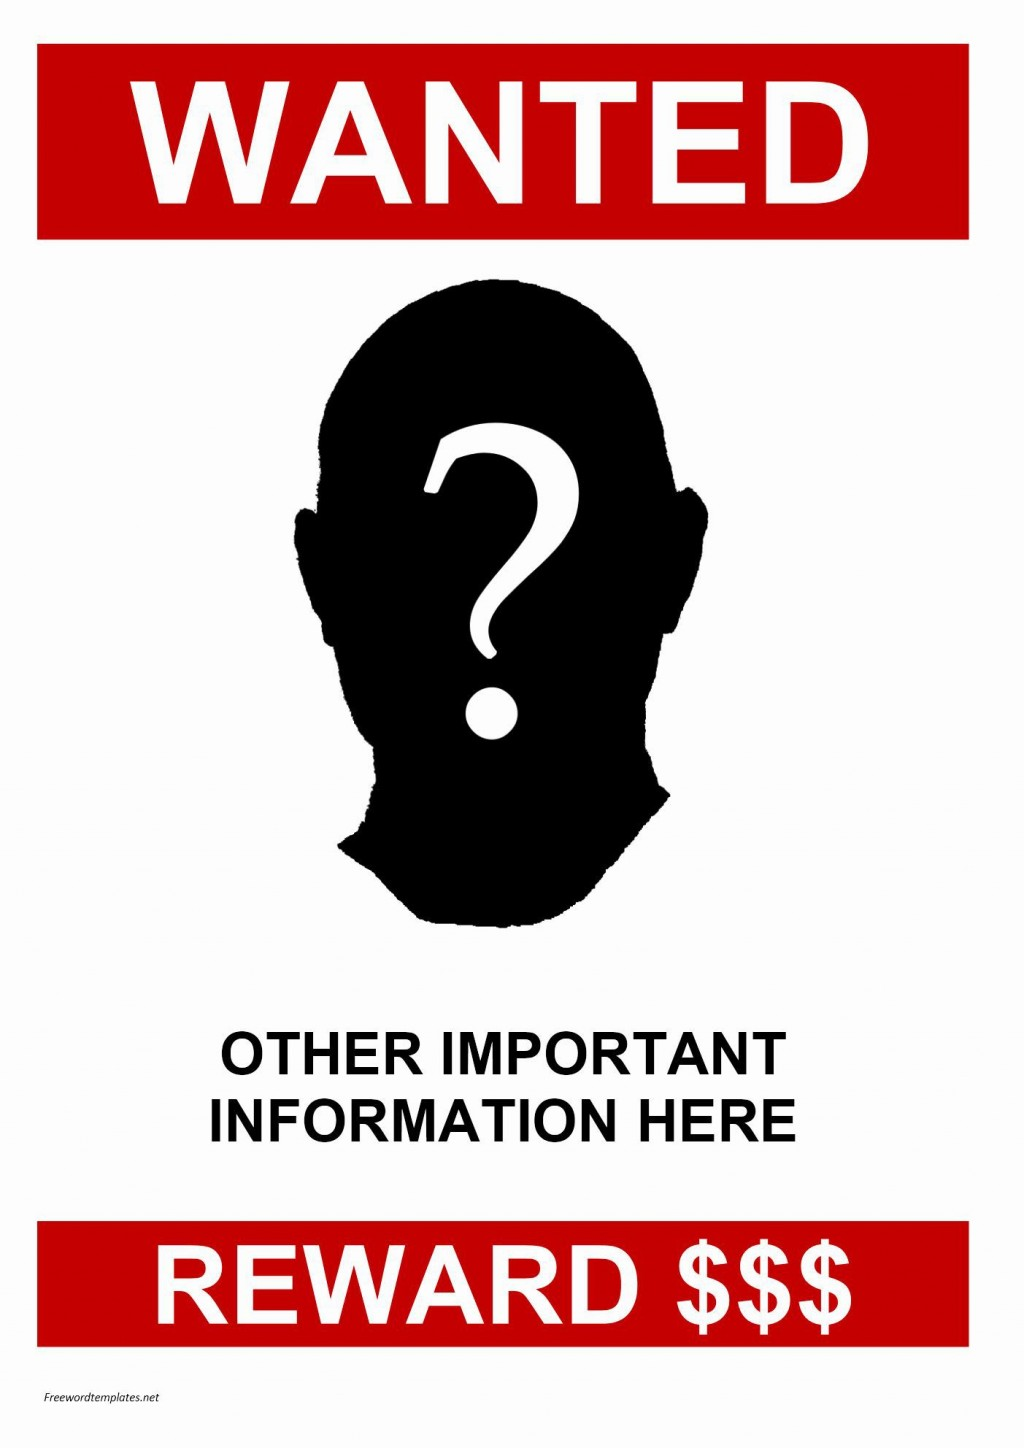 001 Phenomenal Missing Person Poster Template Word Highest Clarity Large